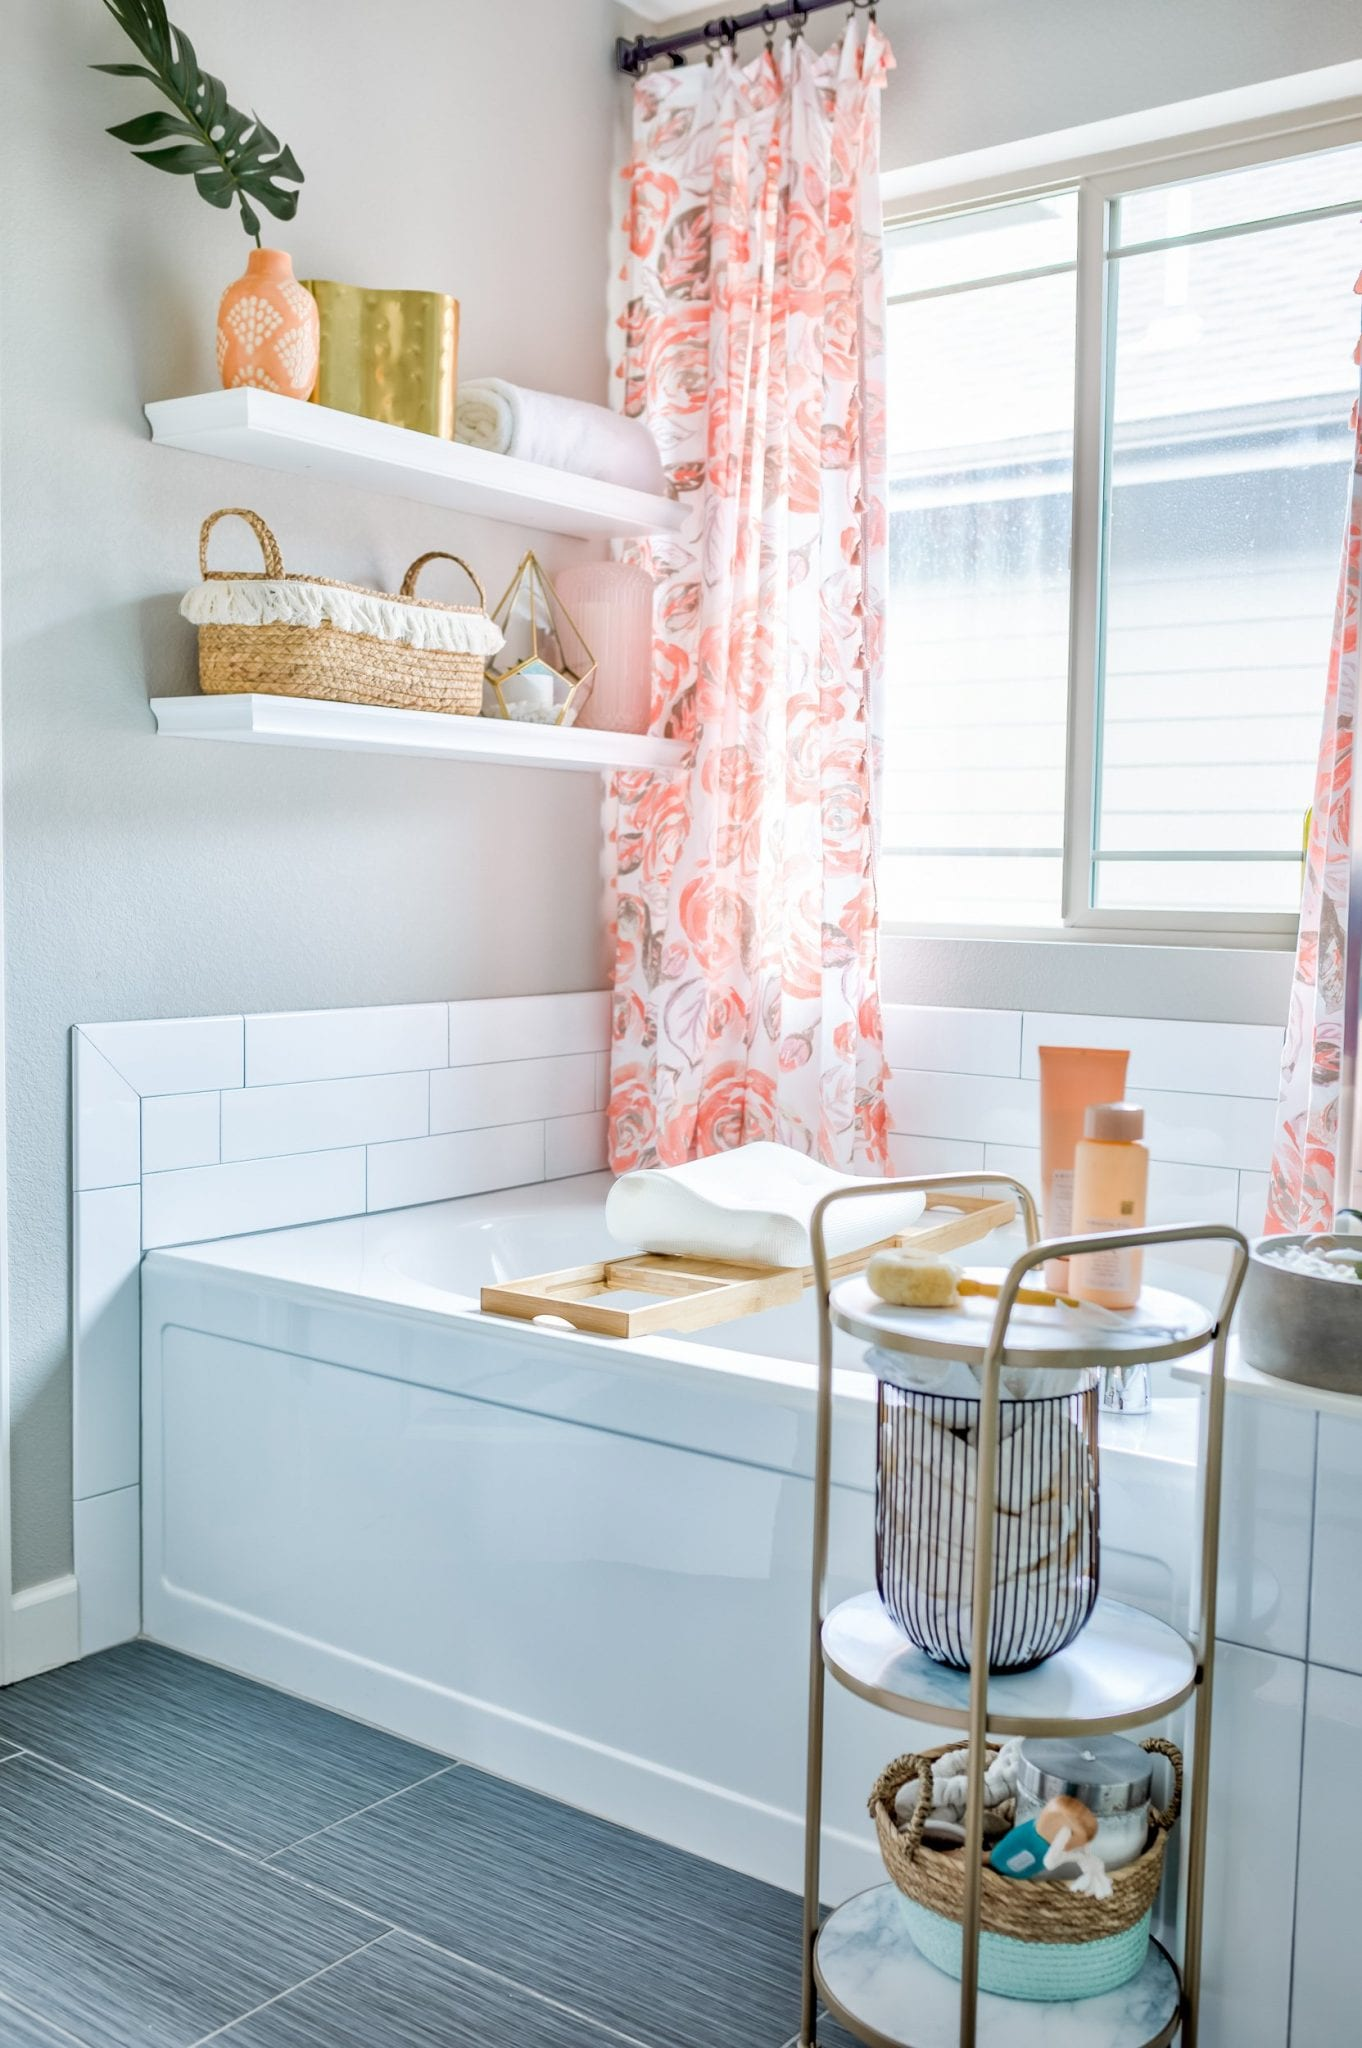 Give your bathroom a luxury feel! 9 tips for bathroom decor spa inspiration to show you how to get luxury bathroom decor on a budget | Never Skip Brunch by Cara Newhart #home #decor #bathroom #spa